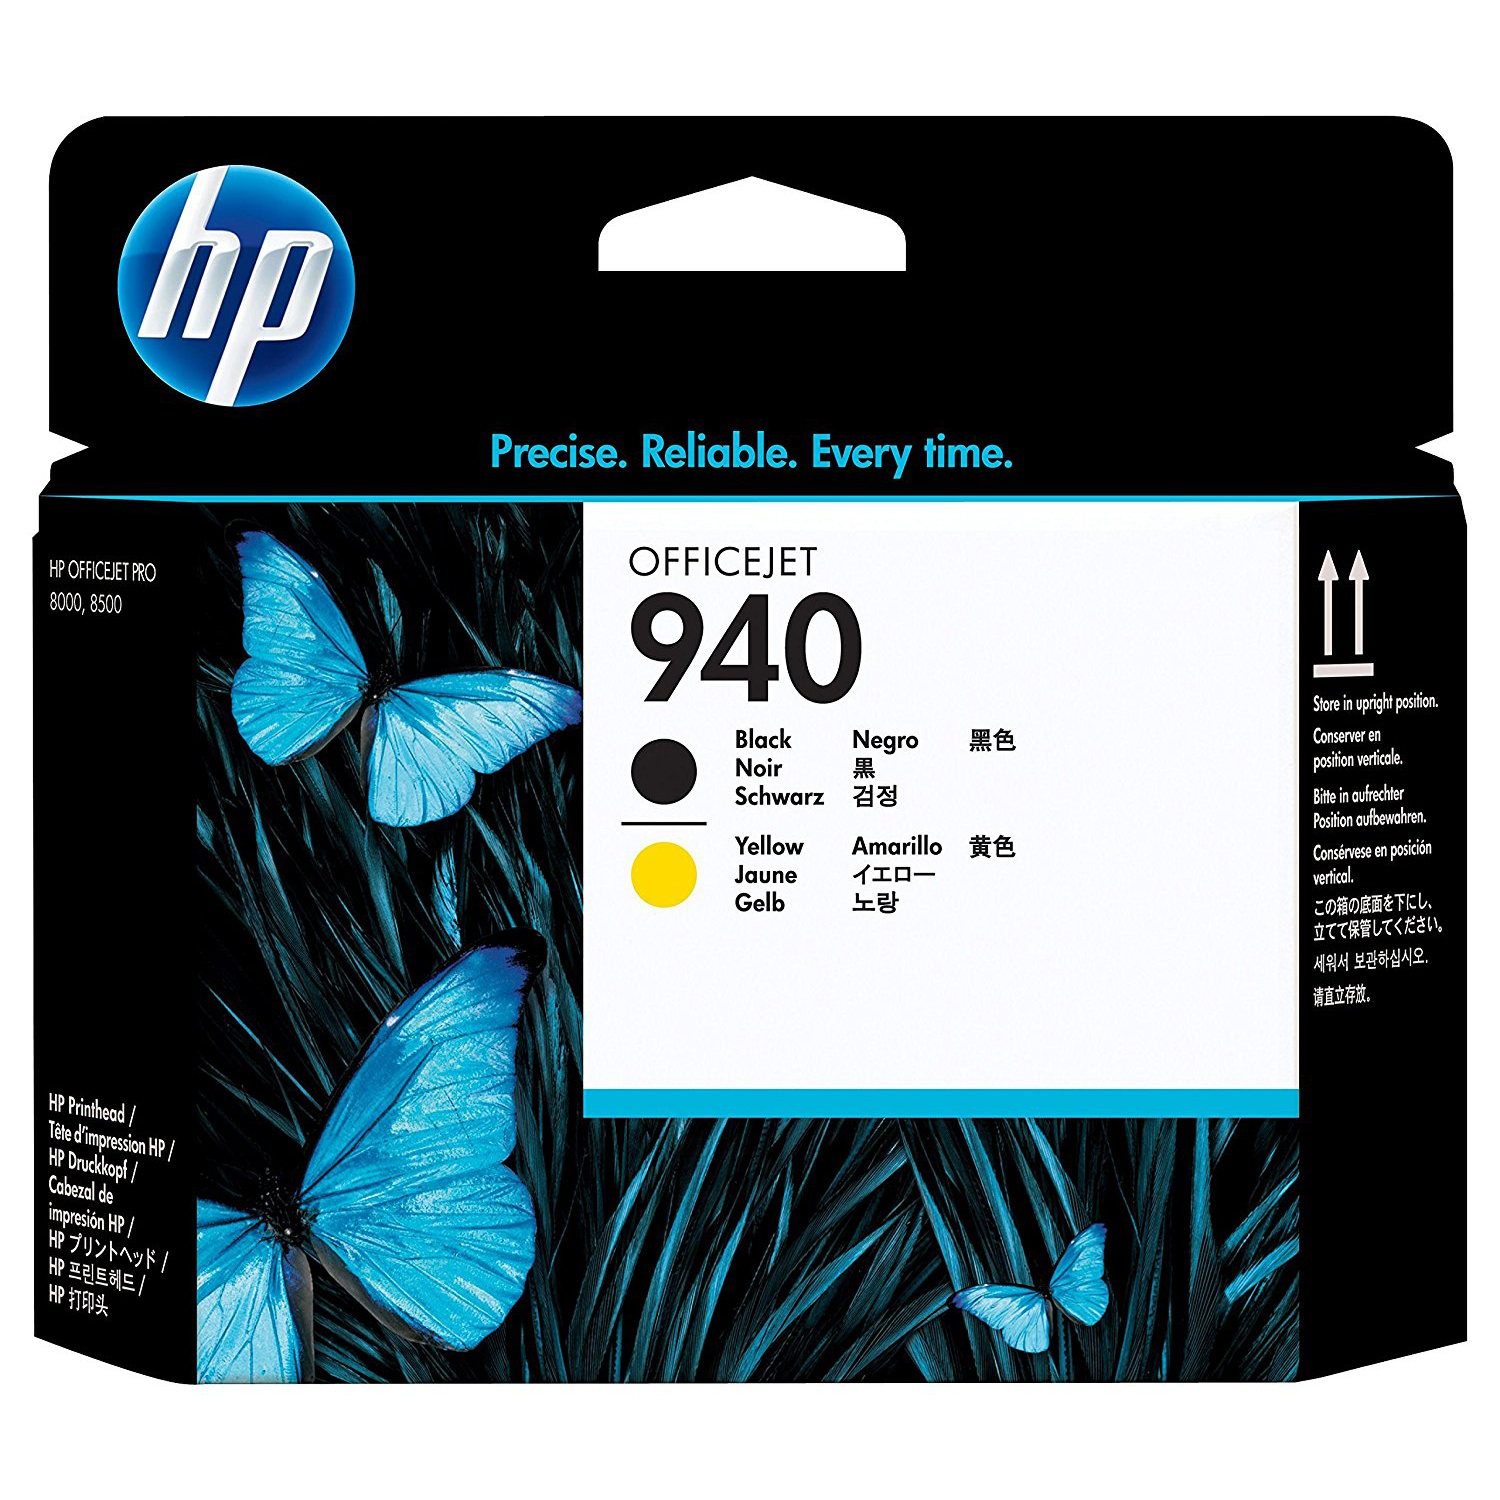 HP 940 Office Printhead (C4900A) - Black/Yellow